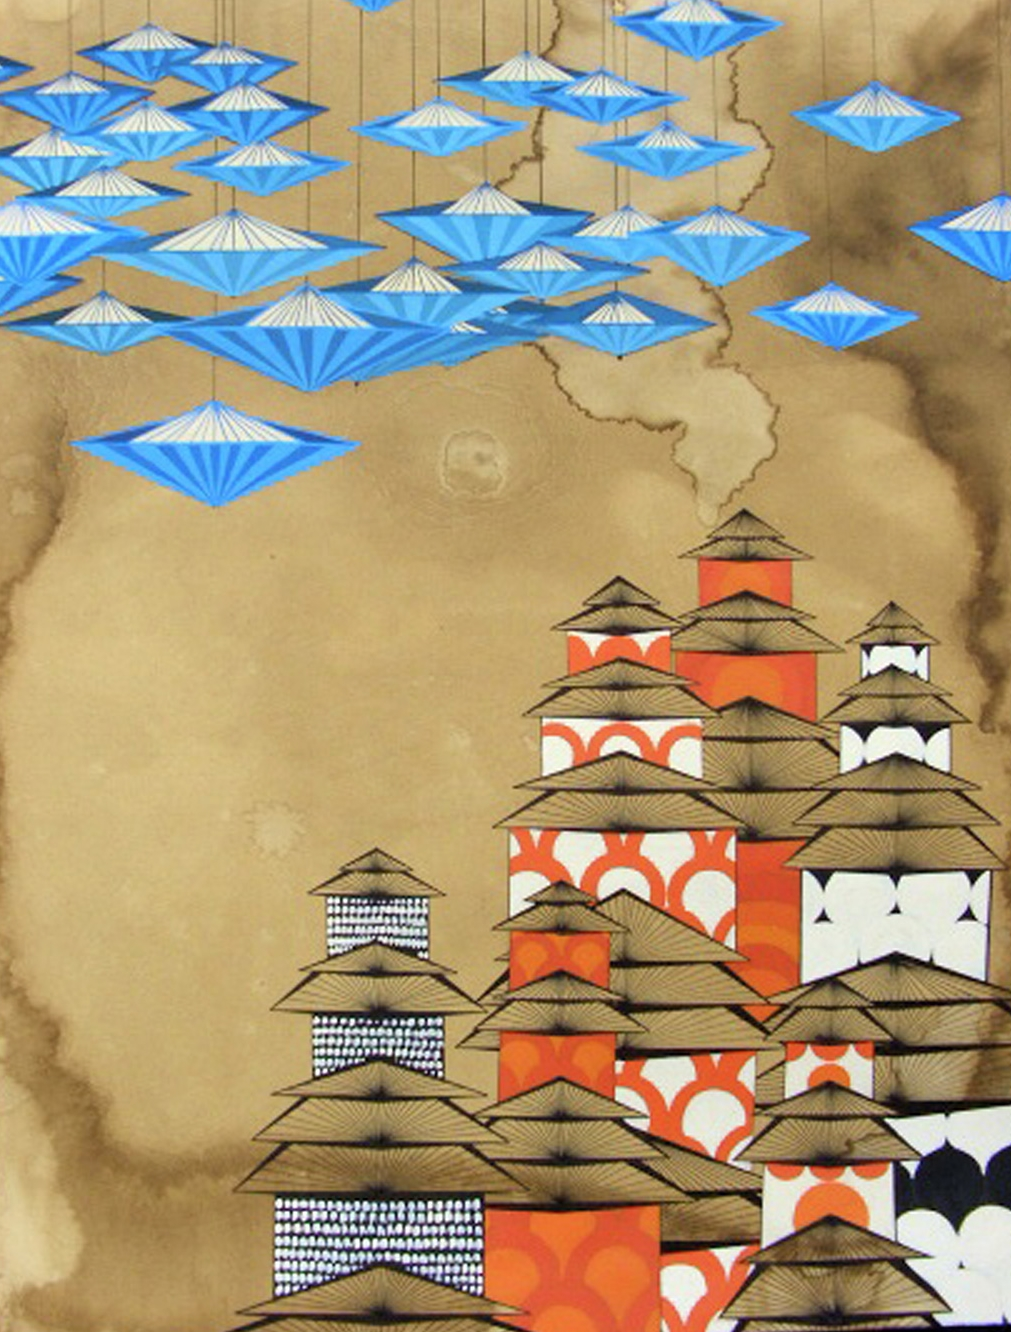 Umbrella Houses